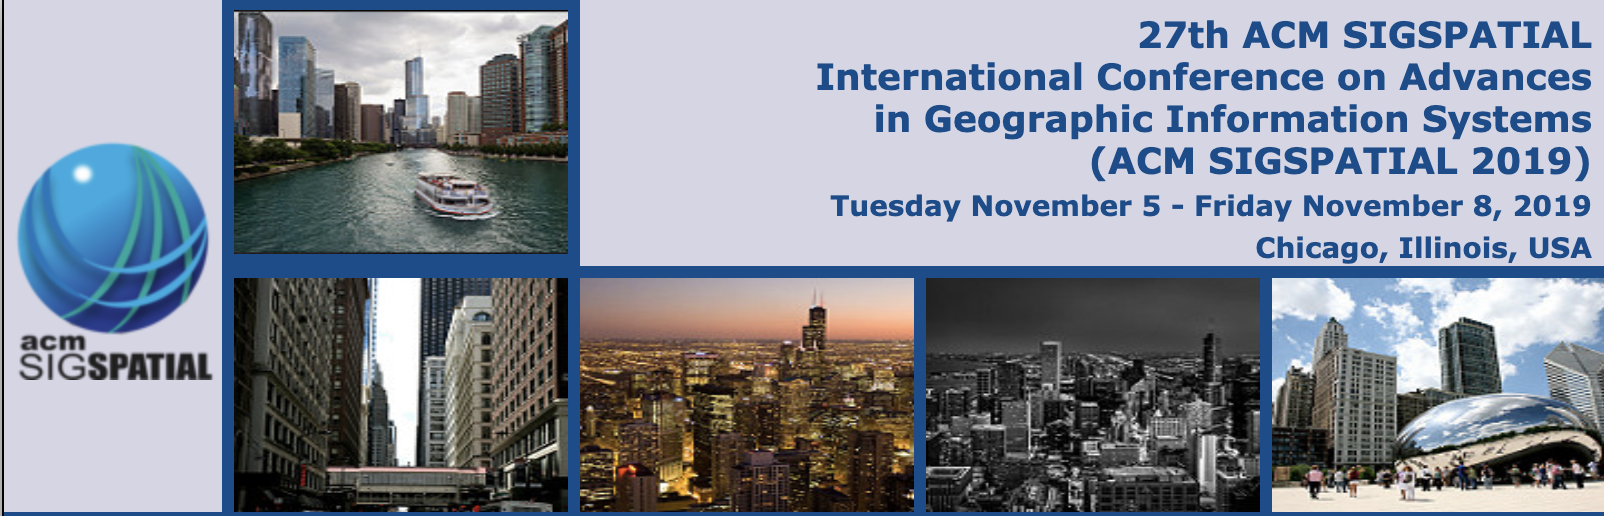 ACM SIGSPATIAL 2019 - 27th ACM SIGSPATIAL International Conference on Advances in Geographic Information Systems